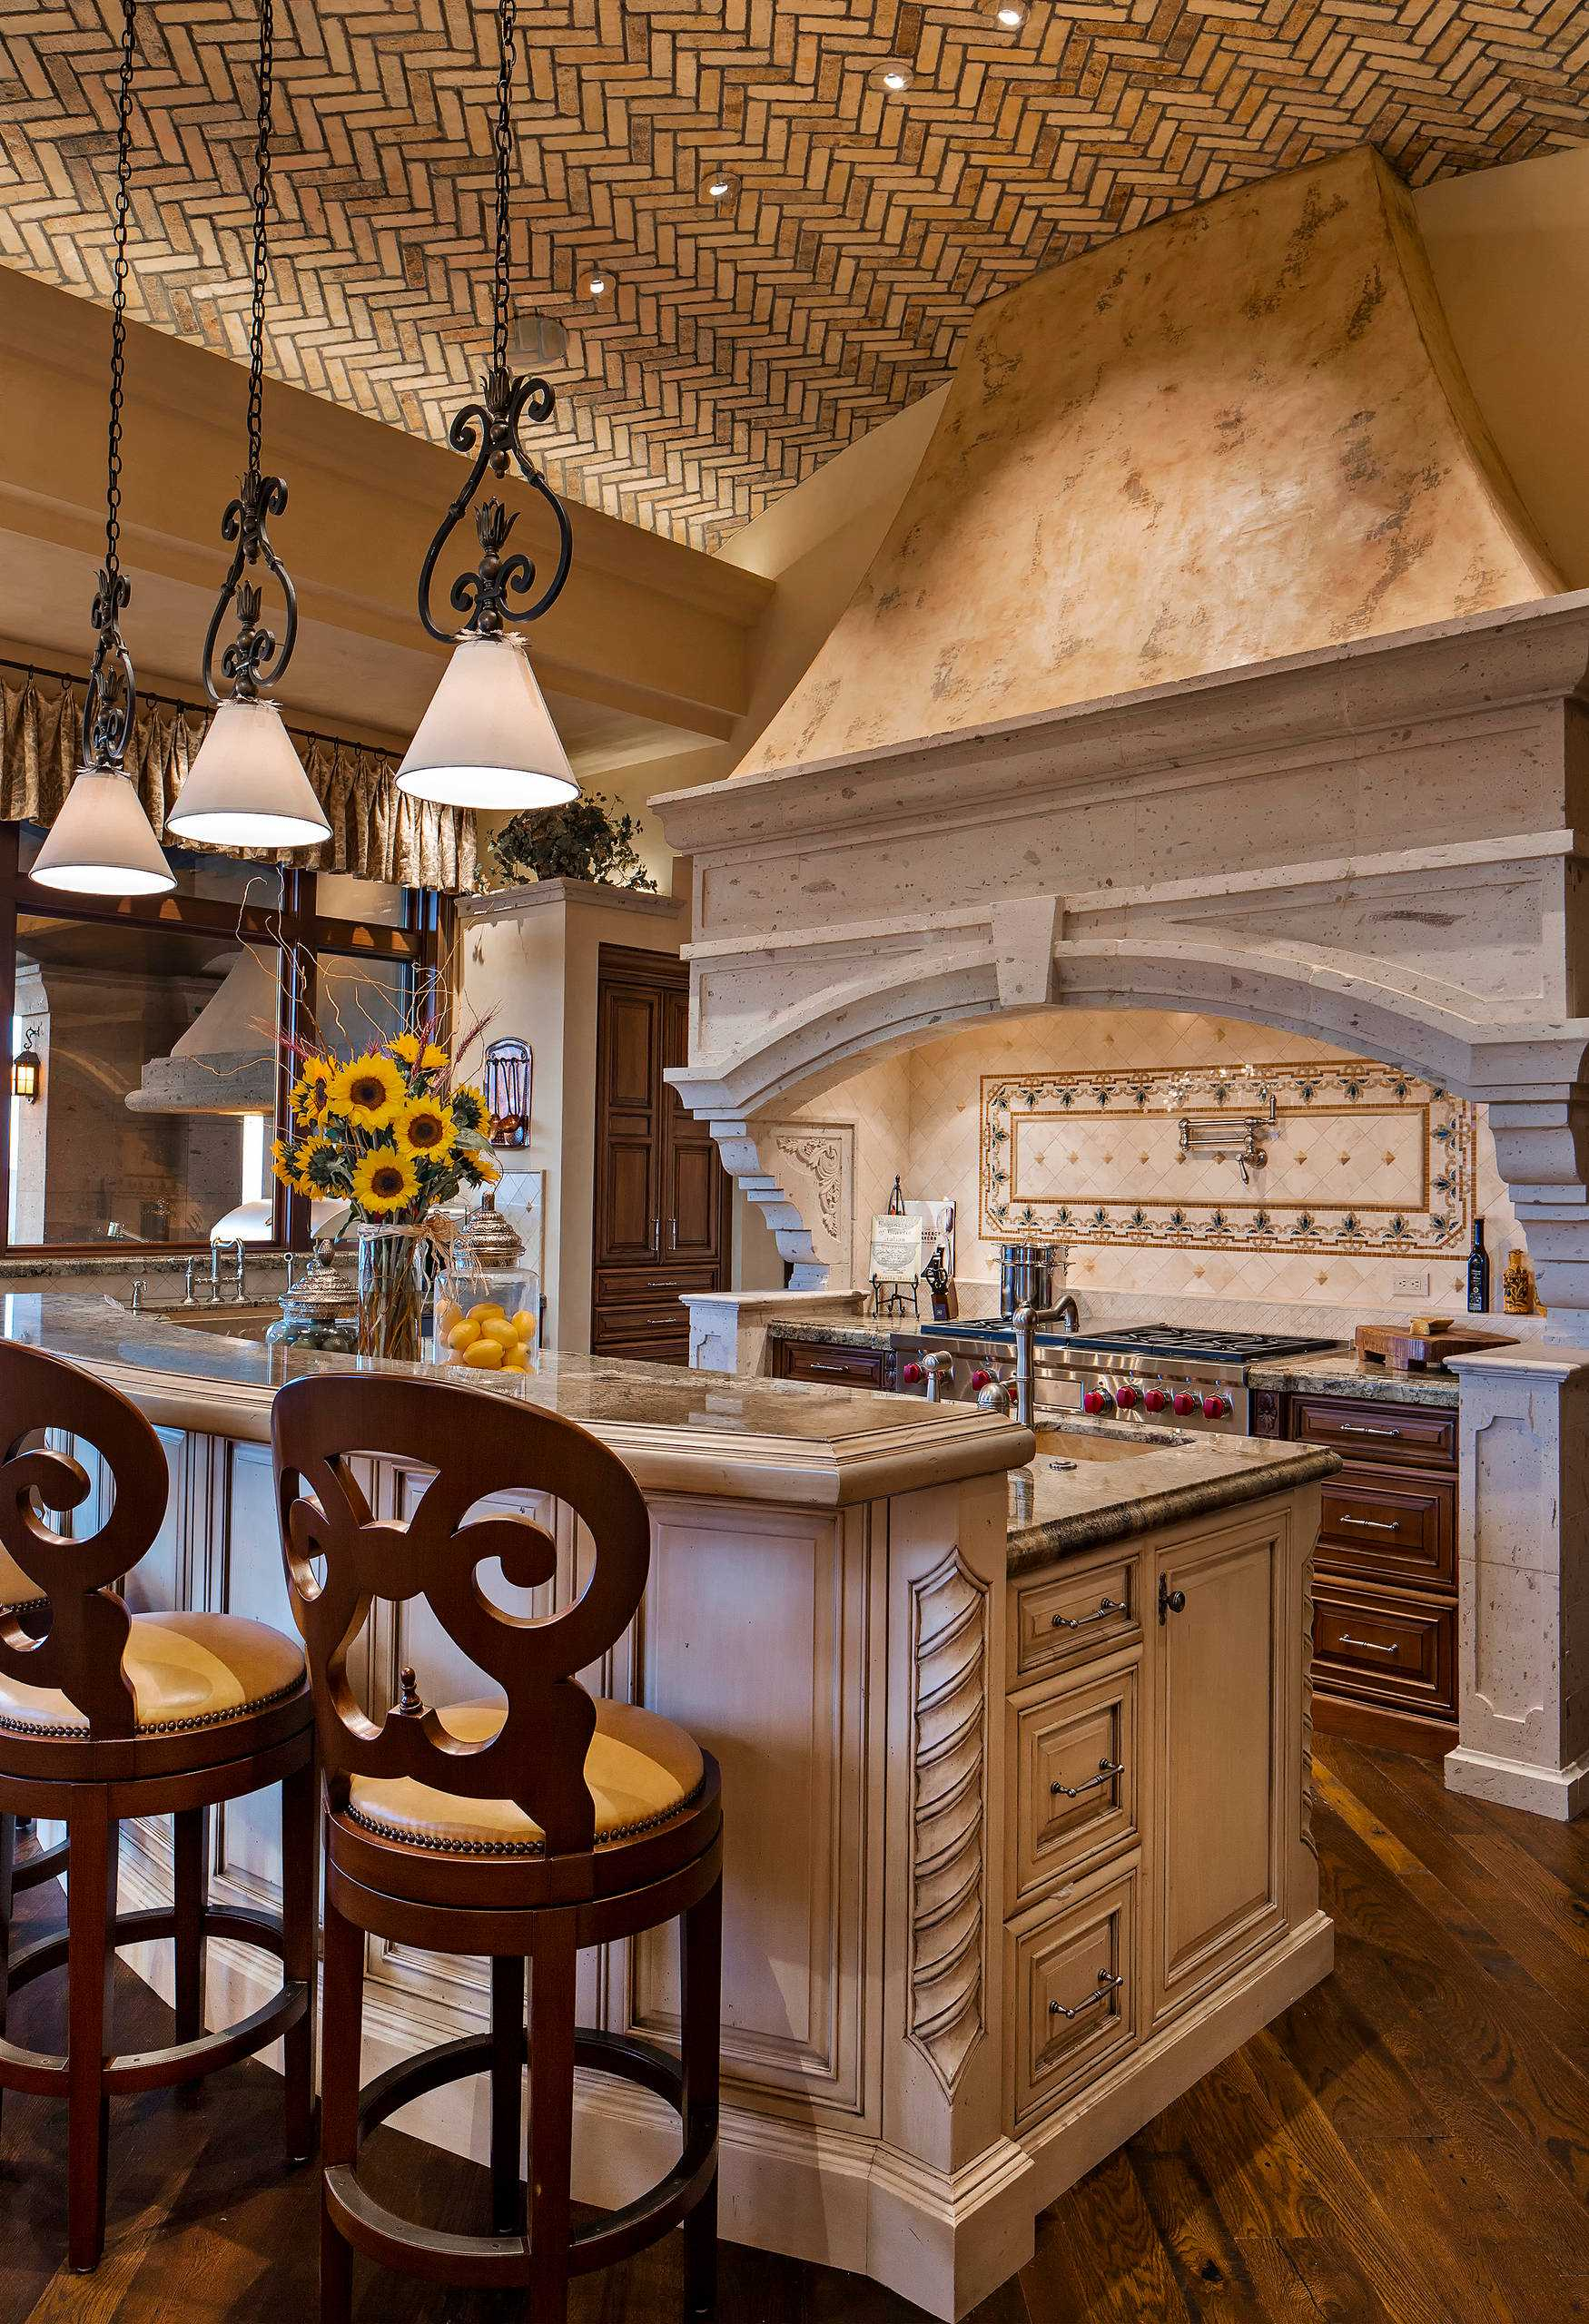 Kitchen Room Interior Design: 16 Charming Mediterranean Kitchen Designs That Will